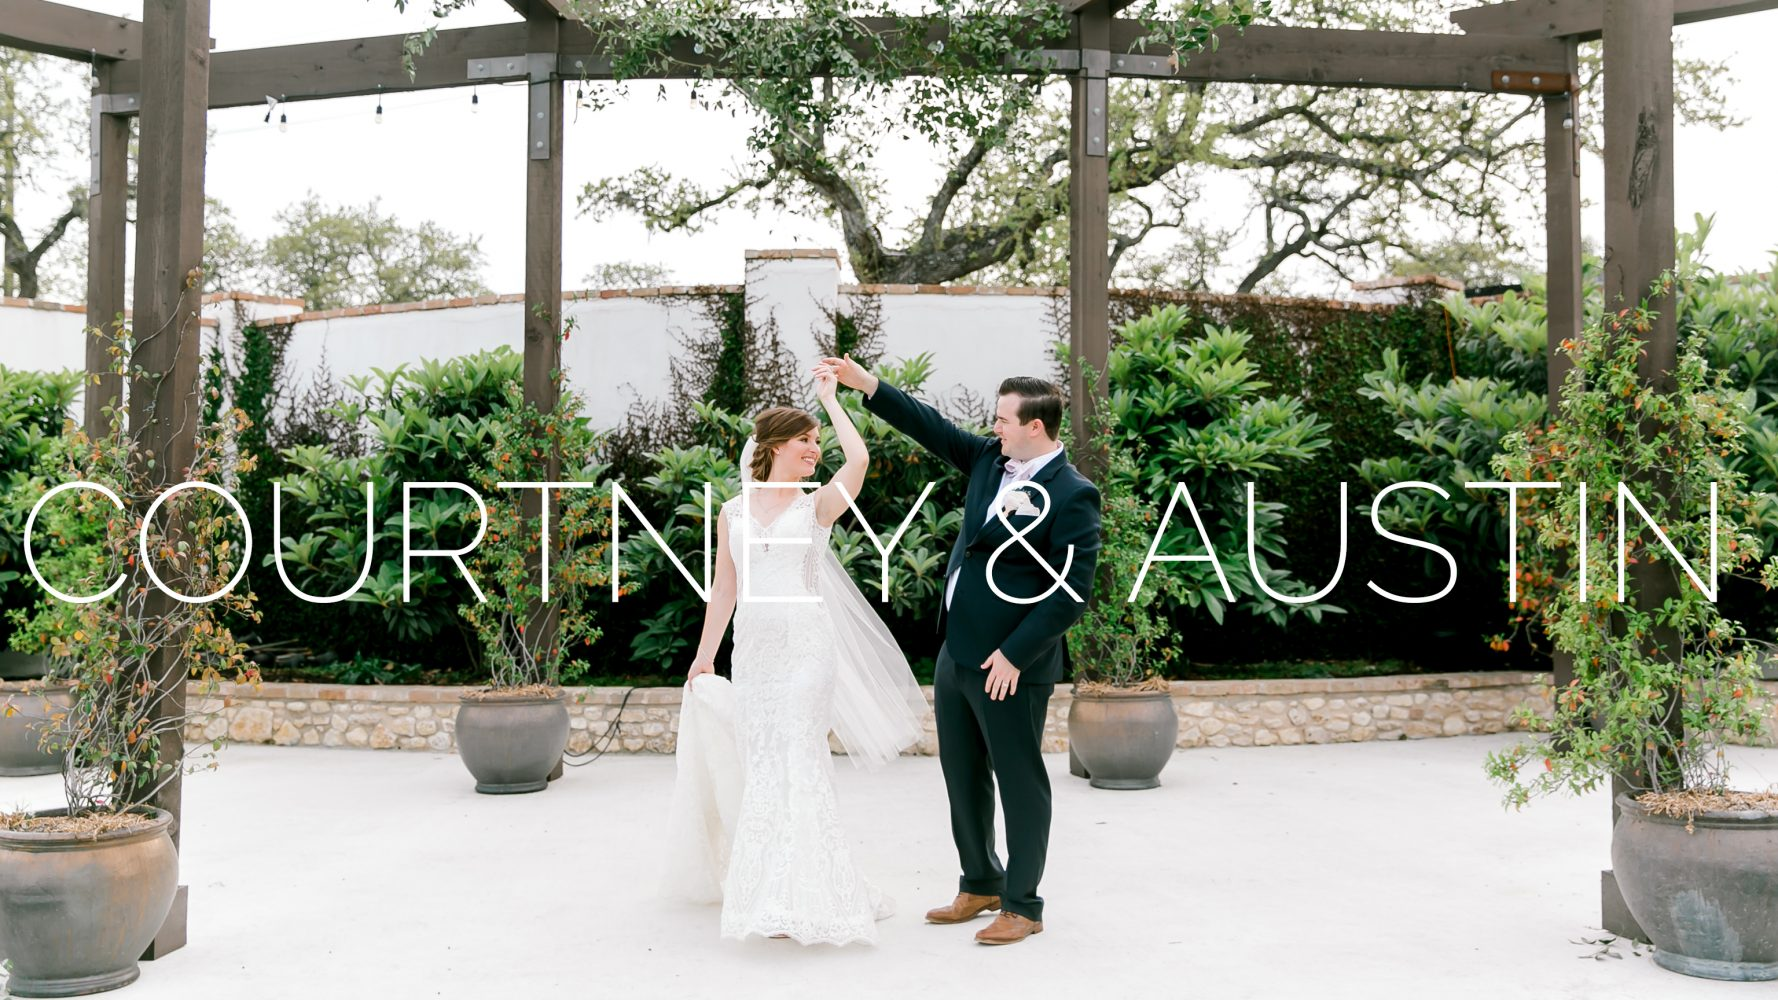 Courtney + Austin | Austin, Texas | Garden Grove Wedding and Event Venue